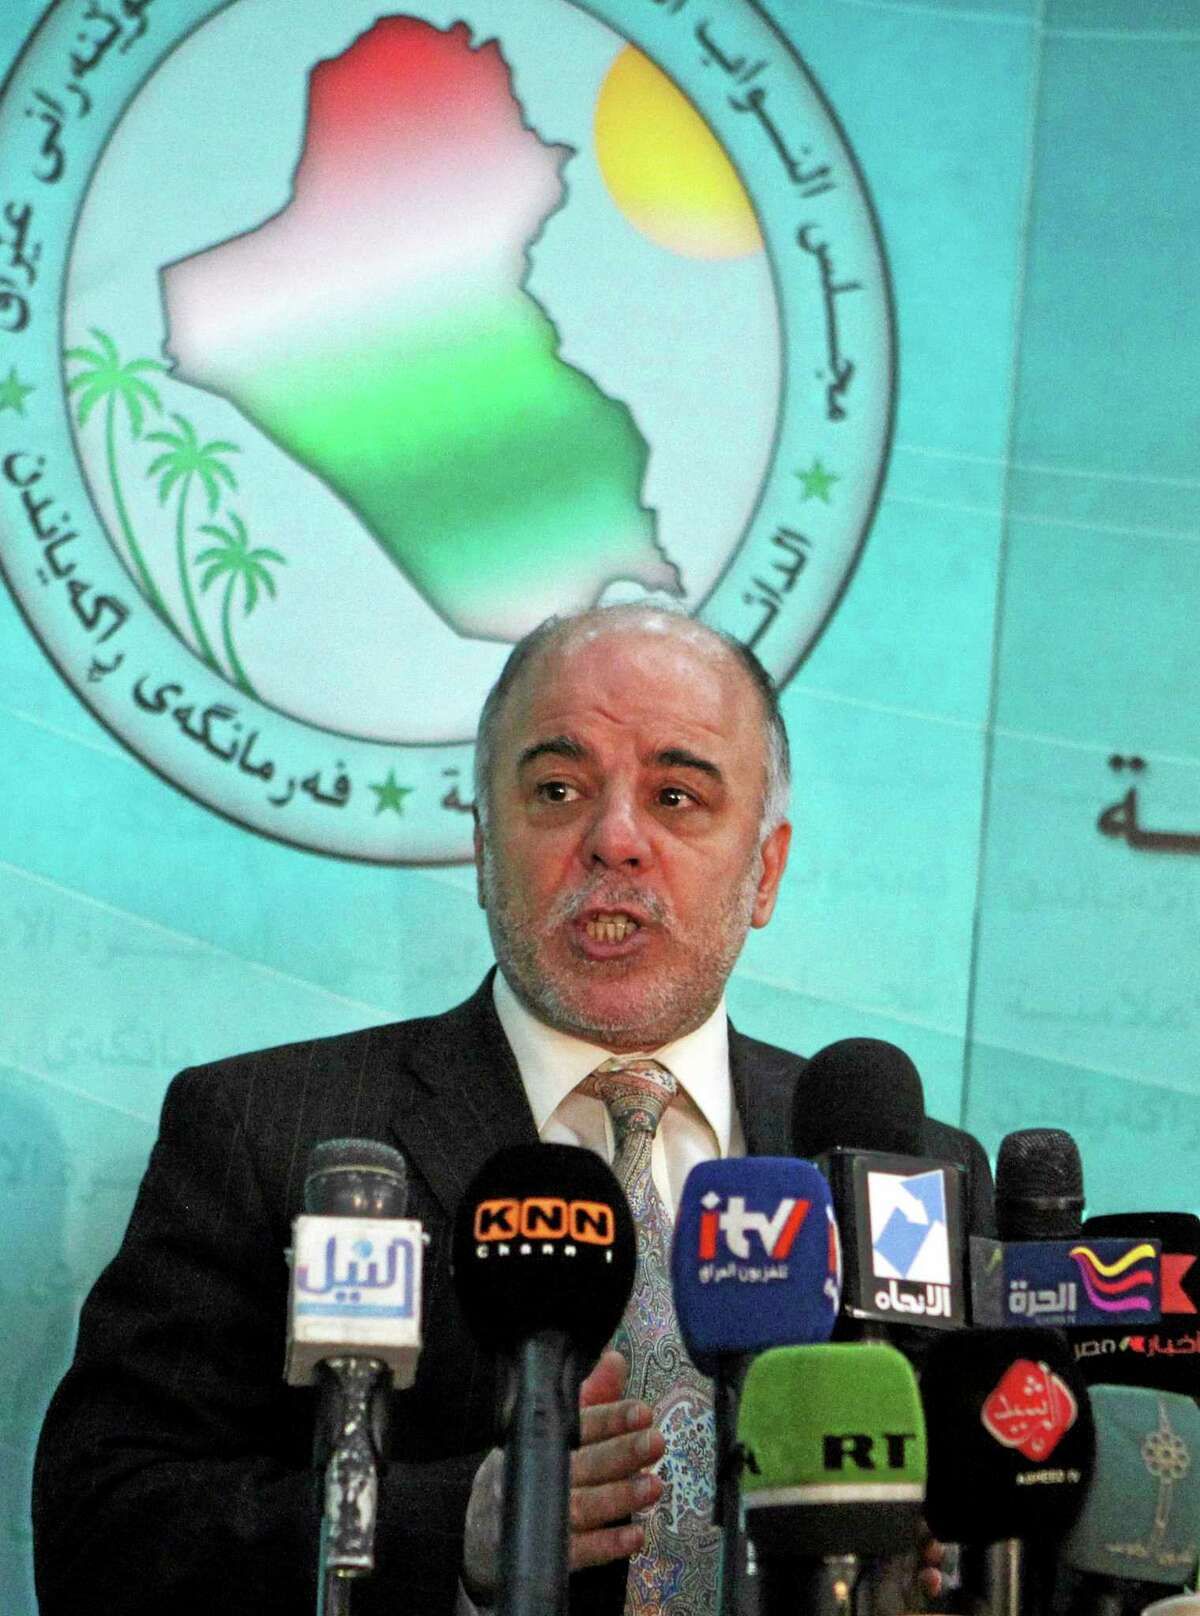 FILE - In this Saturday, Dec. 5, 2009 file photo, Shiite lawmaker Haider al-Ibadi speaks to the press after an Iraqi Parliament session about the election law in Baghdad, Iraq. On Monday, Aug. 11, 2014, Iraq's largest coalition of Shiite political parties chose the Deputy Parliament Speaker Haider al-Ibadi to be its candidate to lead the government in a major defeat for incumbent Prime Minister Nouri al-Maliki just hours after he declared himself the rightful candidate and put troops on the street. Critics say the Shiite al-Maliki contributed to the crisis by monopolizing power and pursuing a sectarian agenda that alienated the country's Sunni and Kurdish minorities. (AP Photo/Karim Kadim, File)